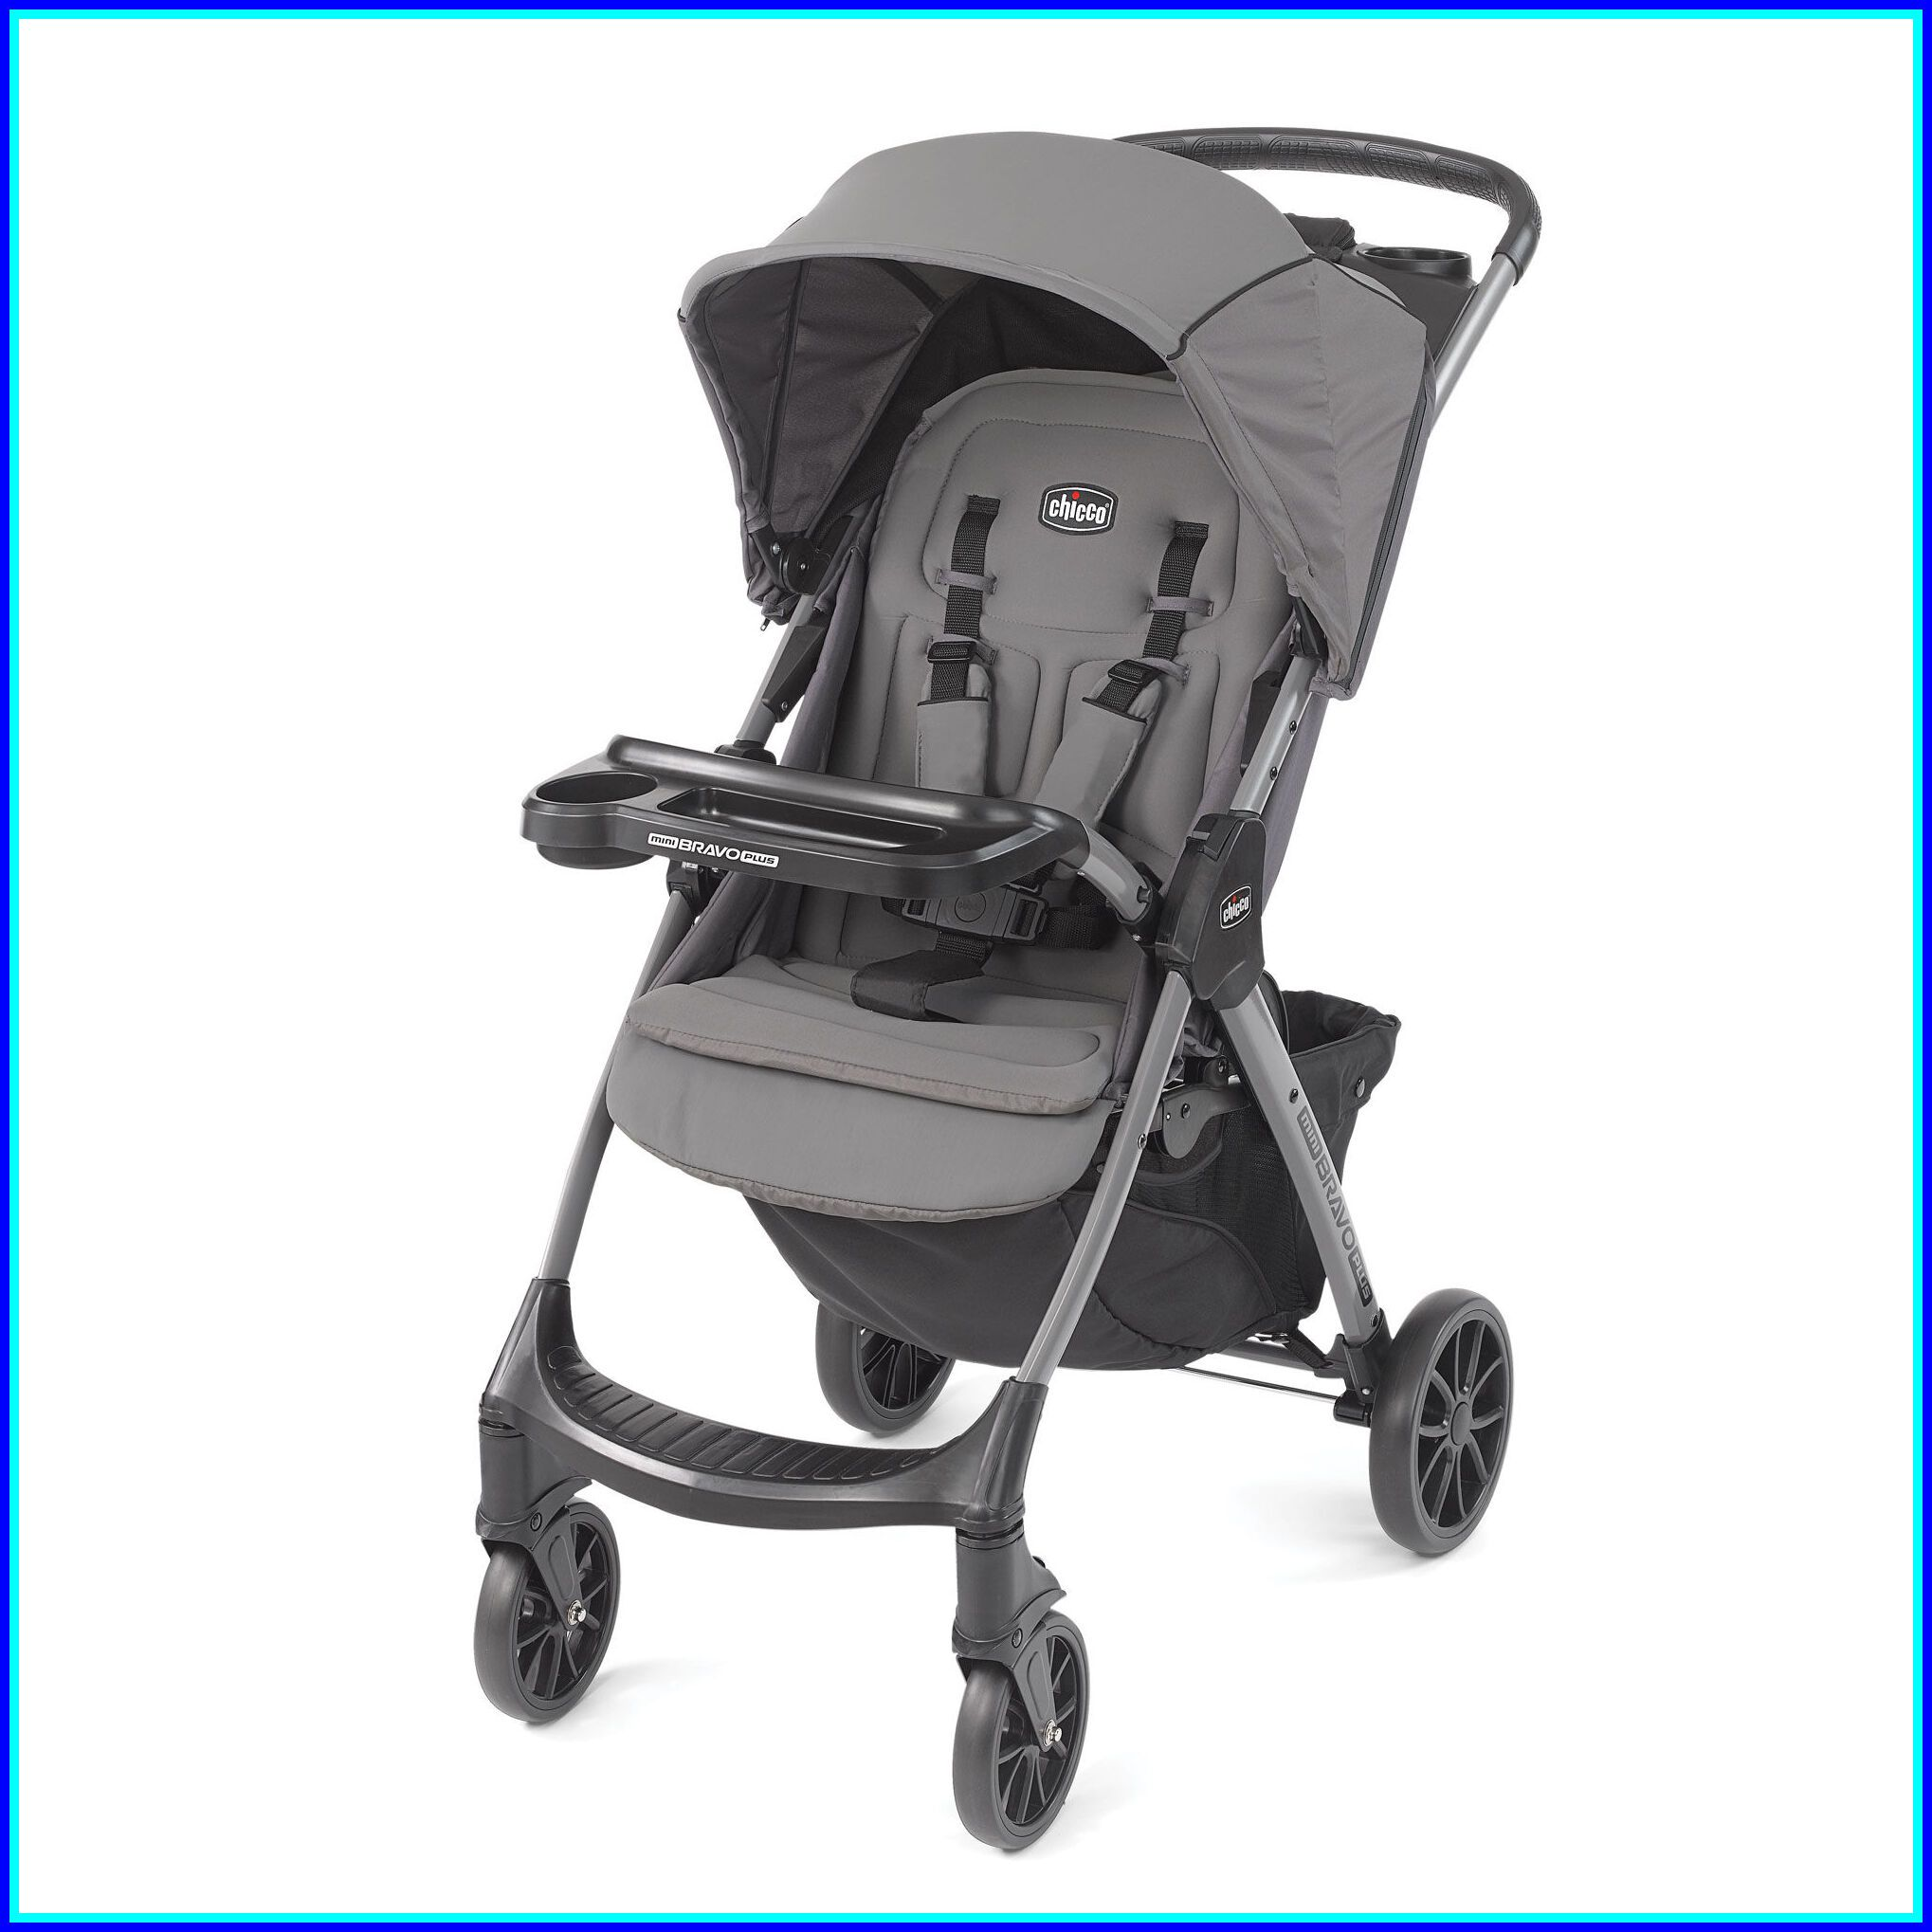 91 reference of chicco stroller umbrella in 2020 Chicco